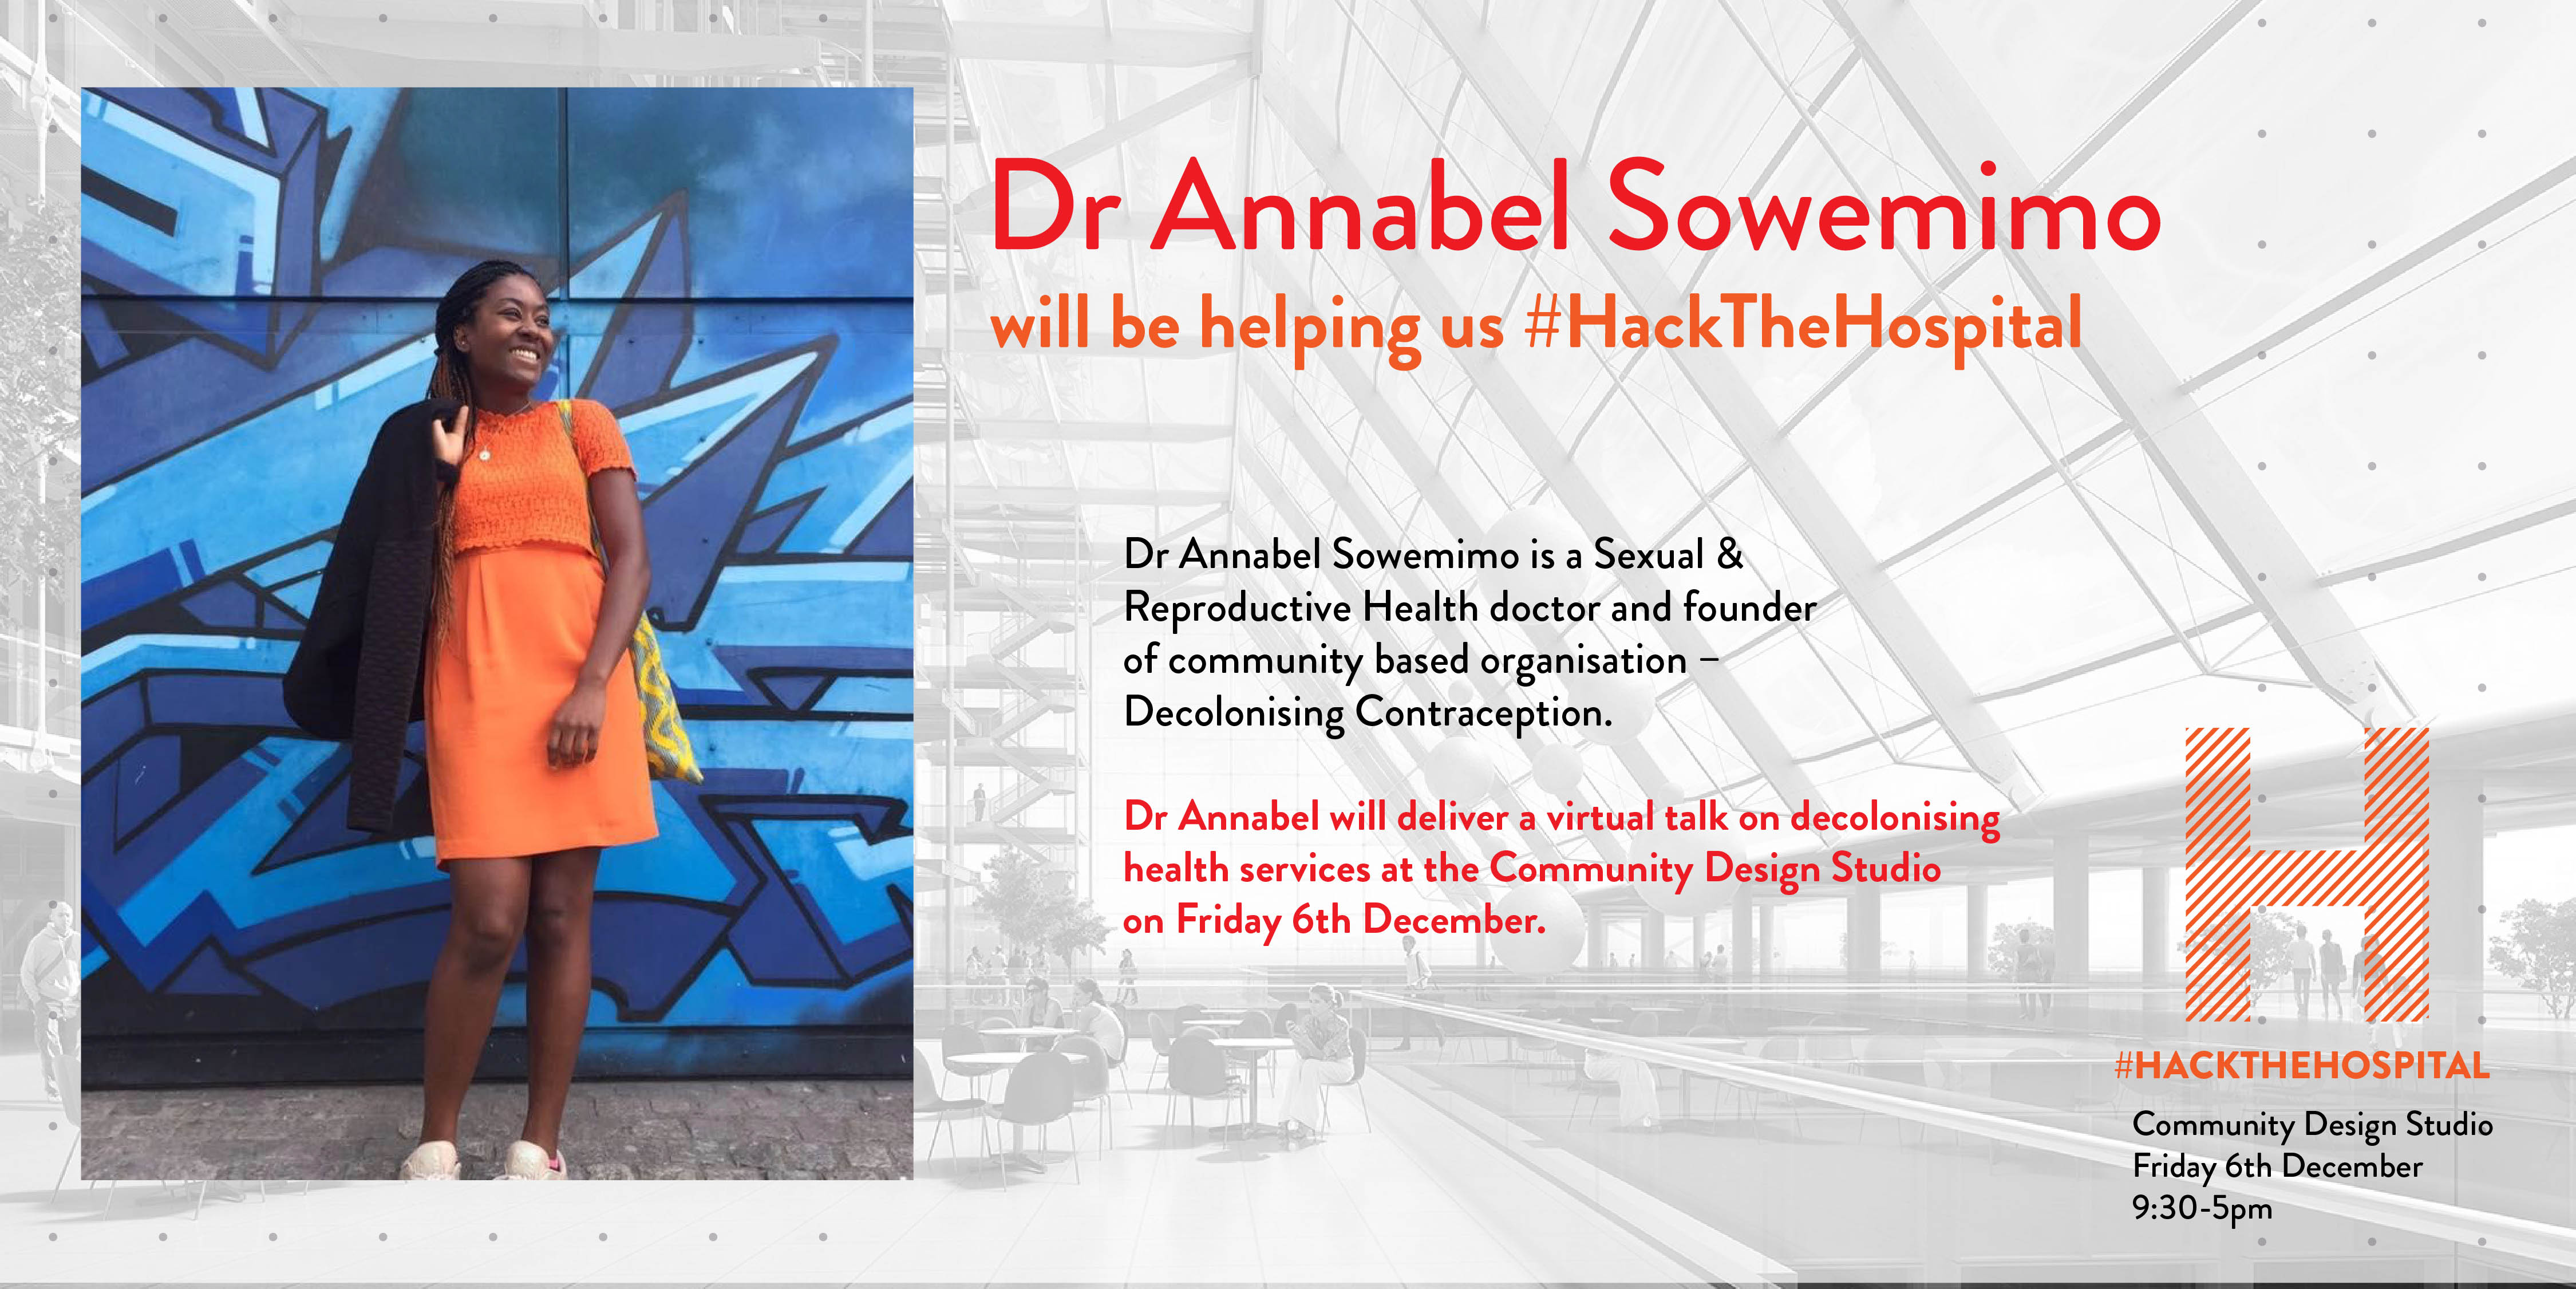 Dr Annabel Sowemimo